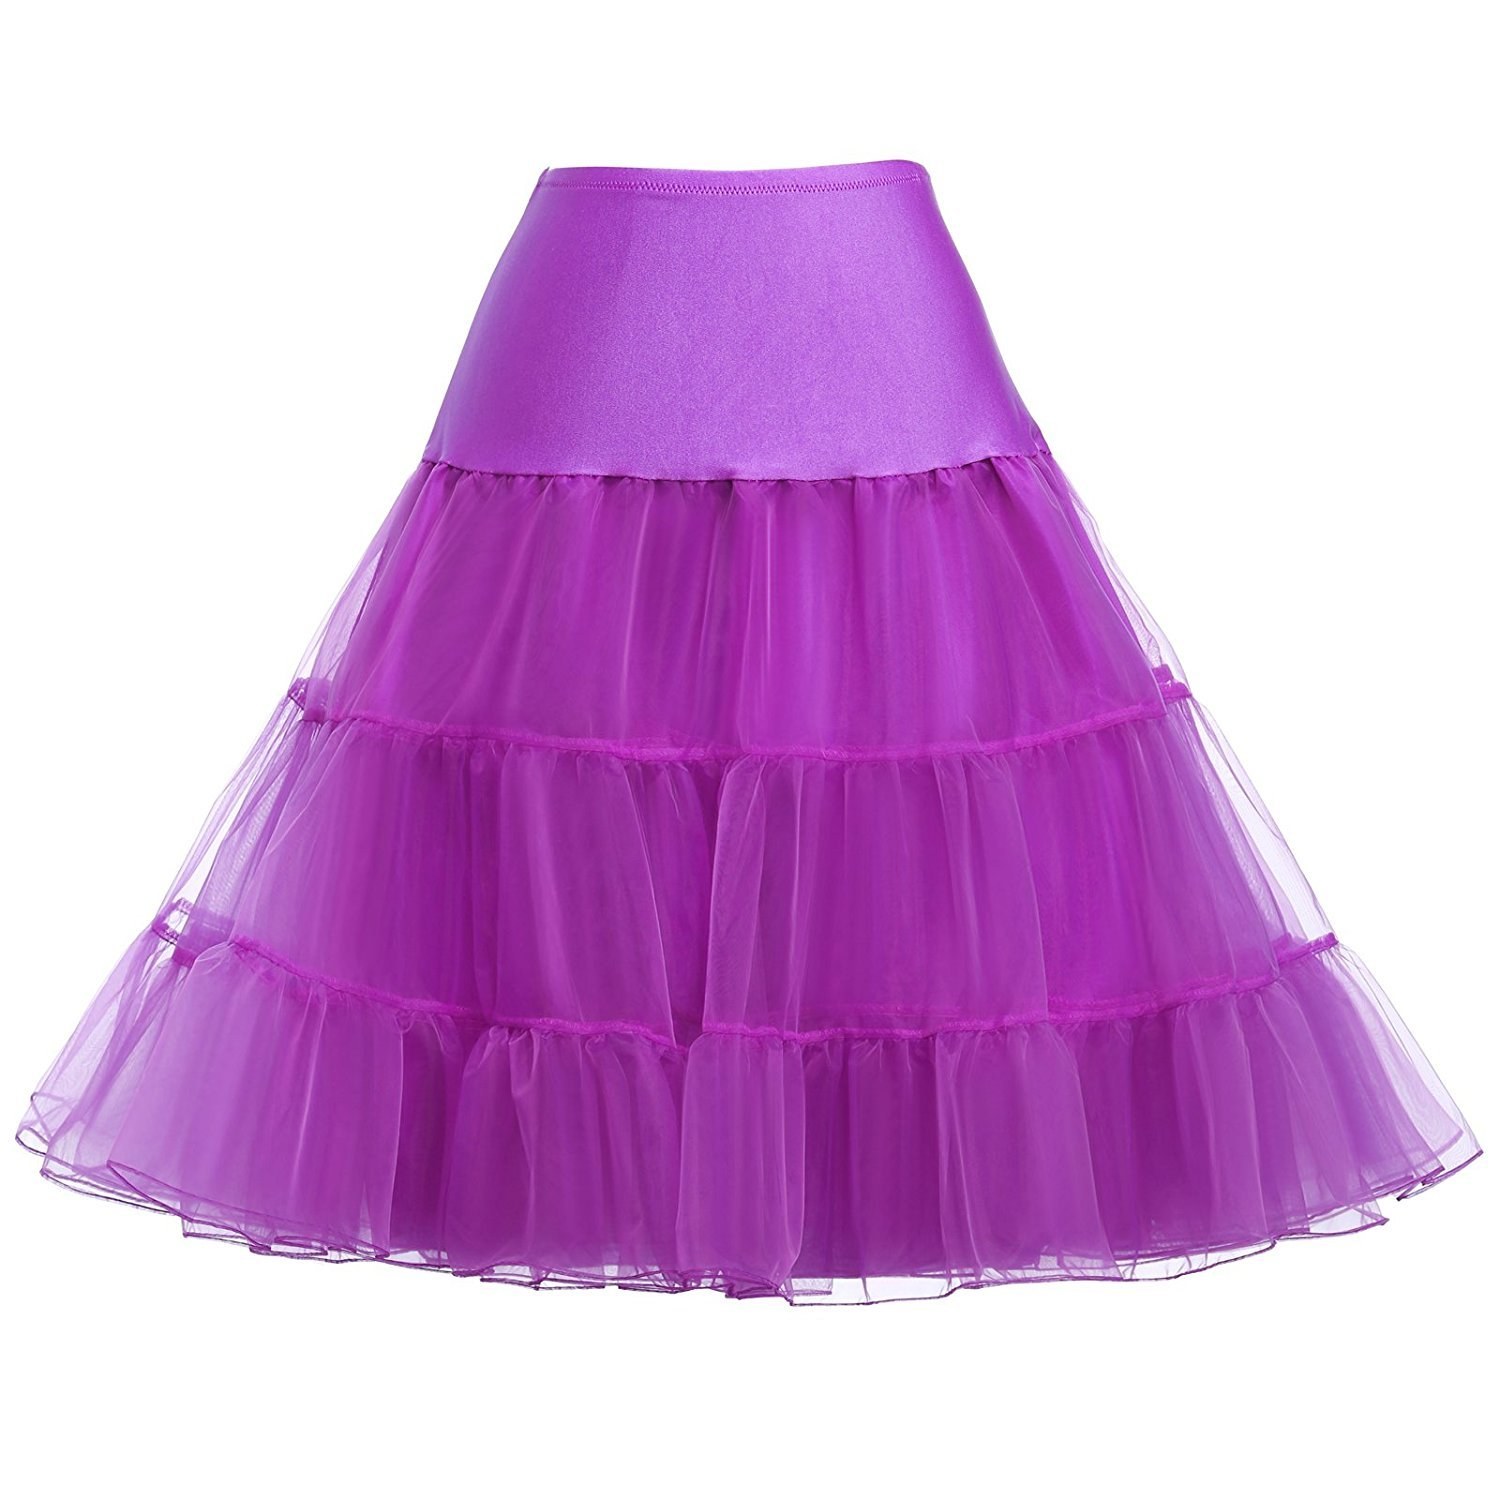 Wishopping Women 1950s Rockabilly Tutu Skirt Crinoline Petticoat P18 Purple Size L WP18PL-L